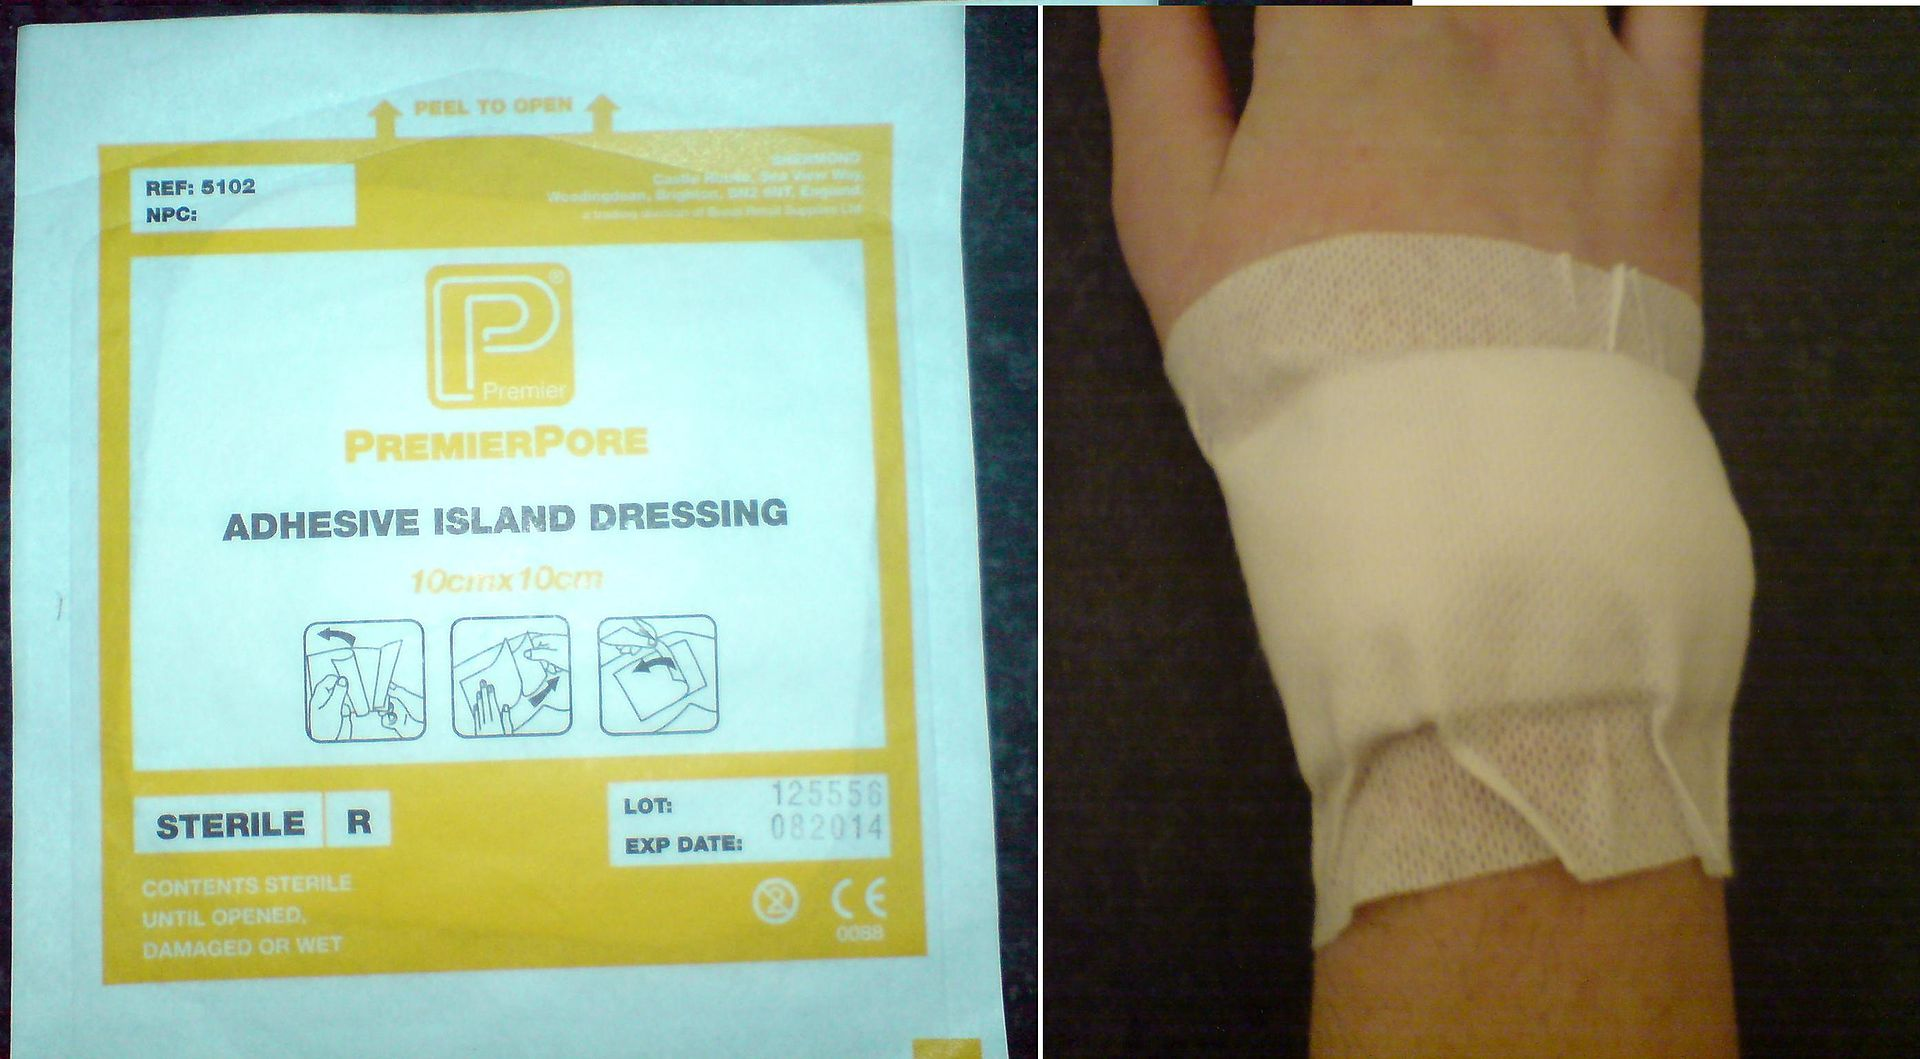 Px Adhesive Dressing